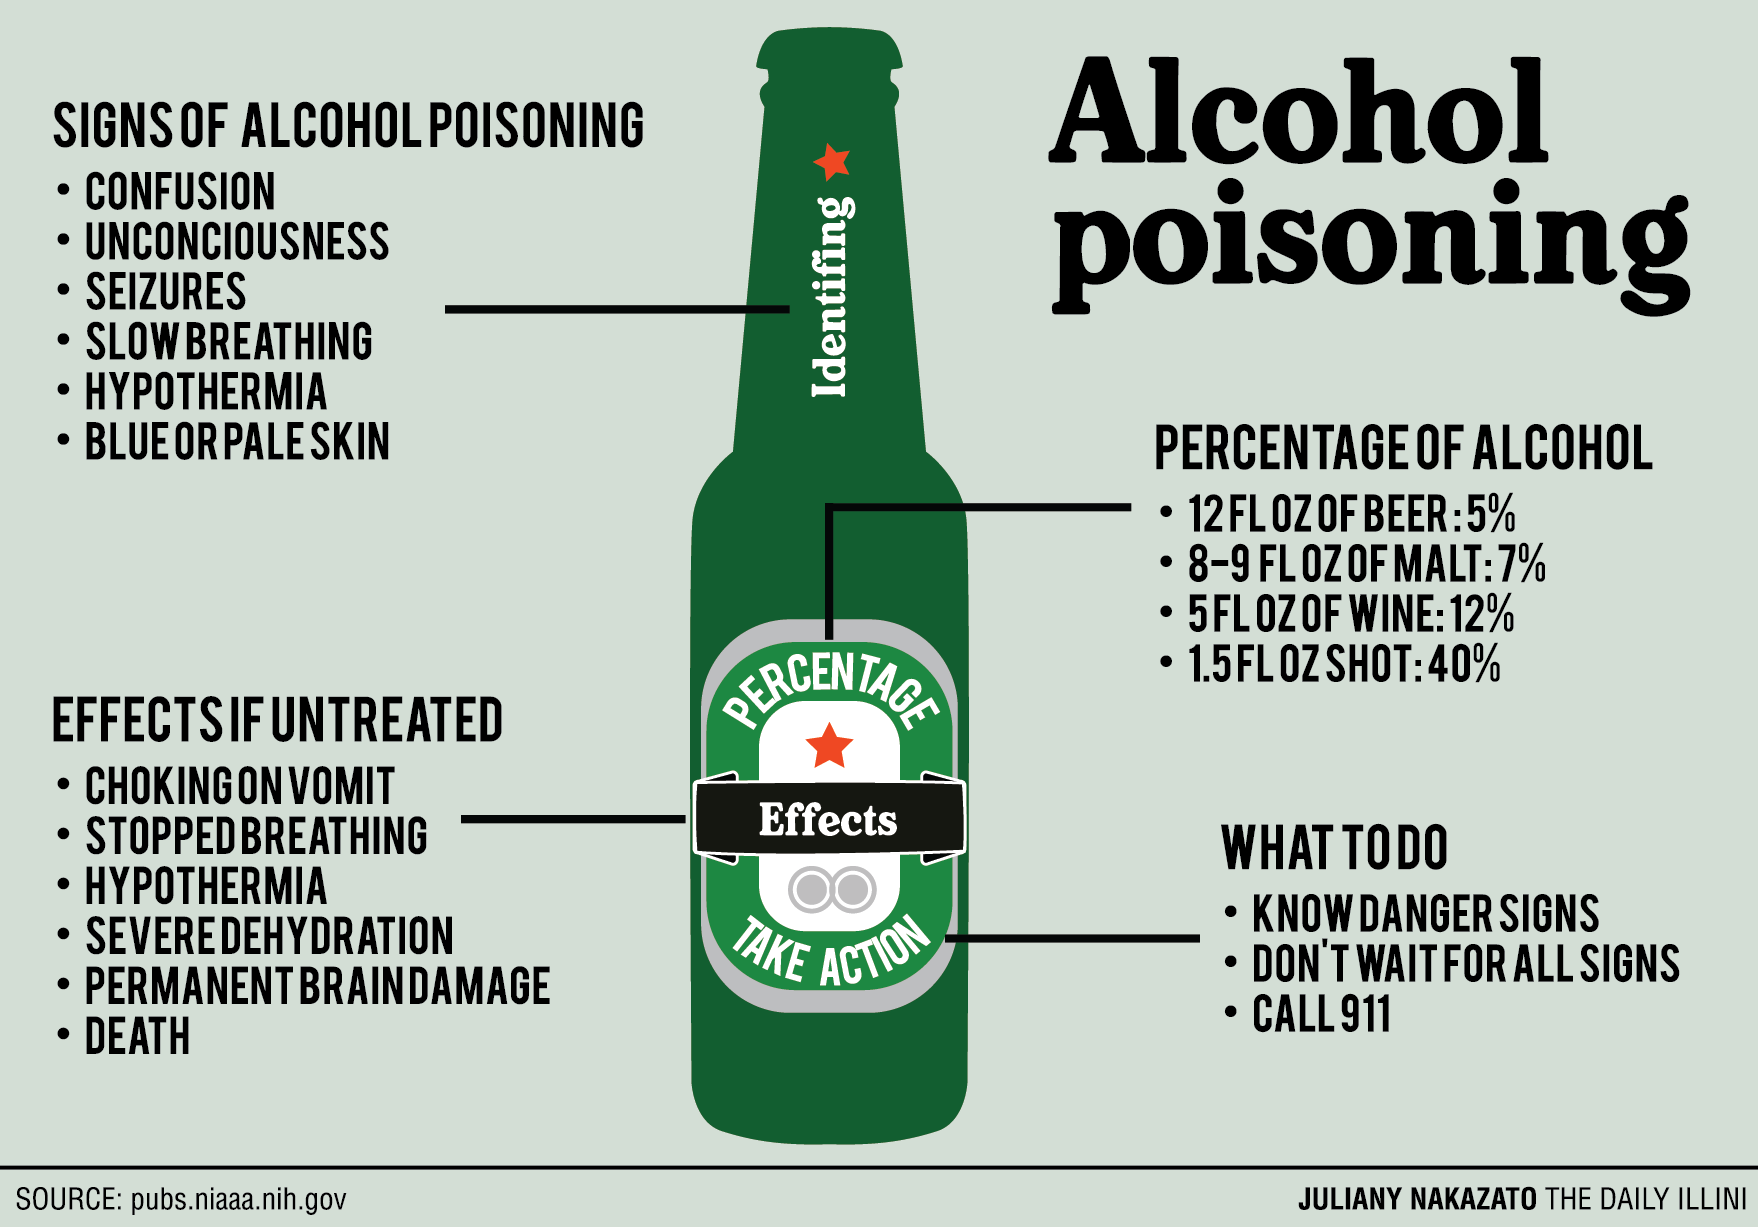 34959_alchpoisoning01o-1.png